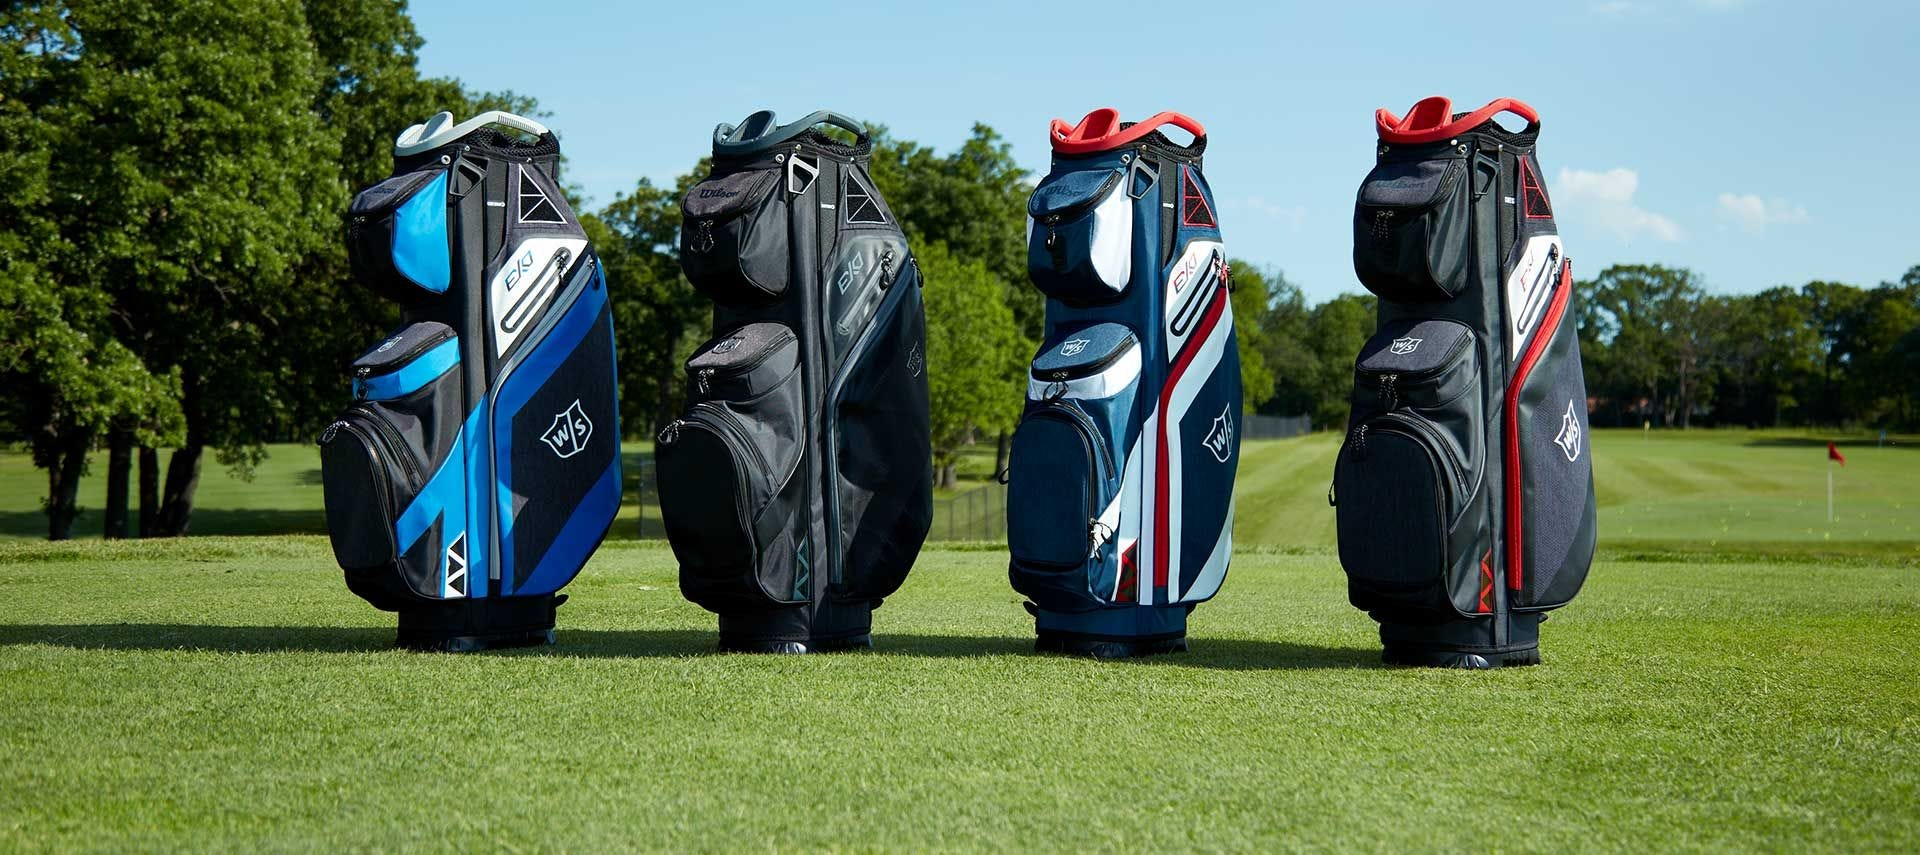 Range of EXO Cart bags on a golf course